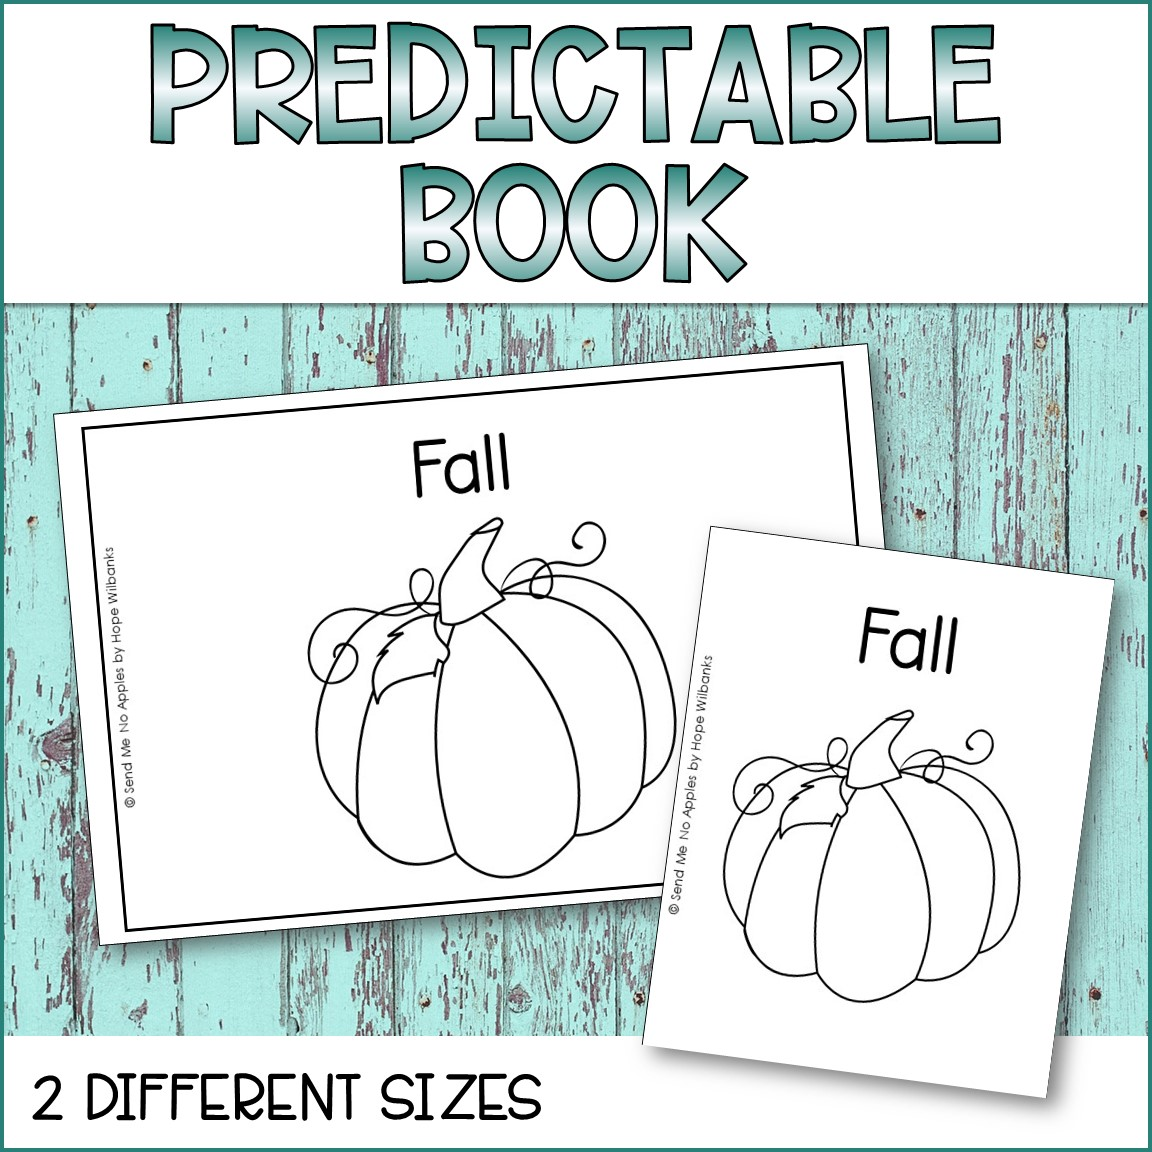 Predictable Text Emergent Reader - Fall